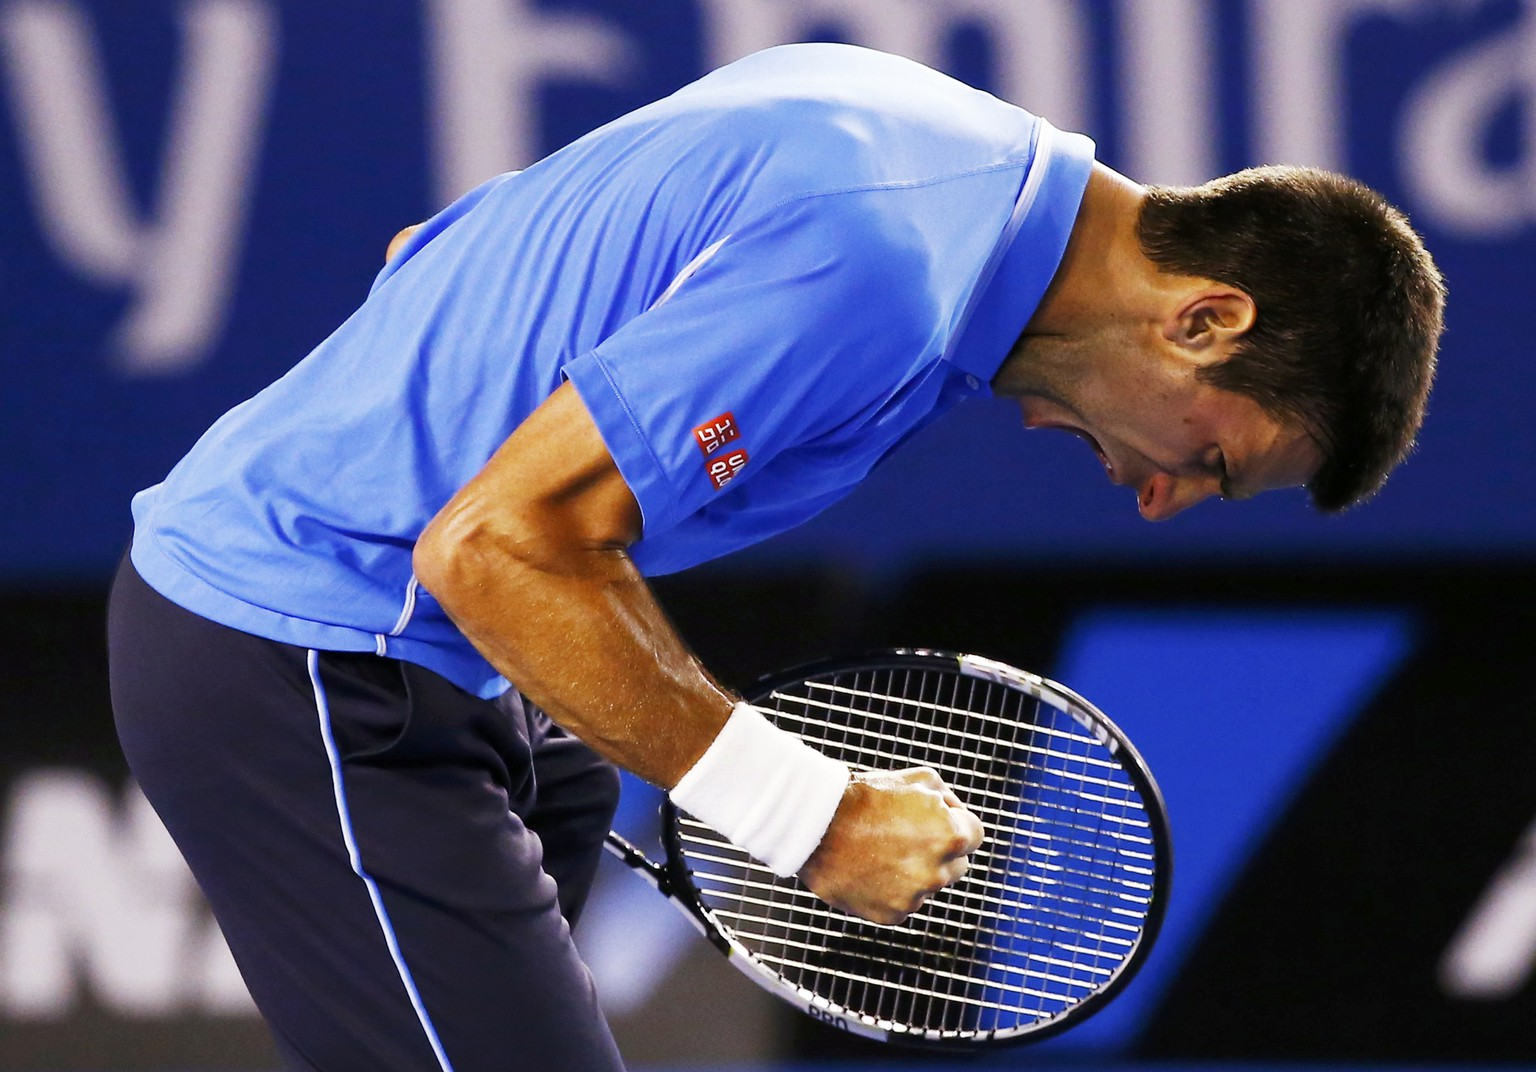 Novak Djokovic of Serbia reacts after winning a point against Stan Wawrinka of Switzerland during their men's singles semi-final match at the Australian Open 2015 tennis tournament in Melbourne January 30, 2015. REUTERS/Issei Kato (AUSTRALIA  - Tags: SPORT TENNIS TPX IMAGES OF THE DAY)